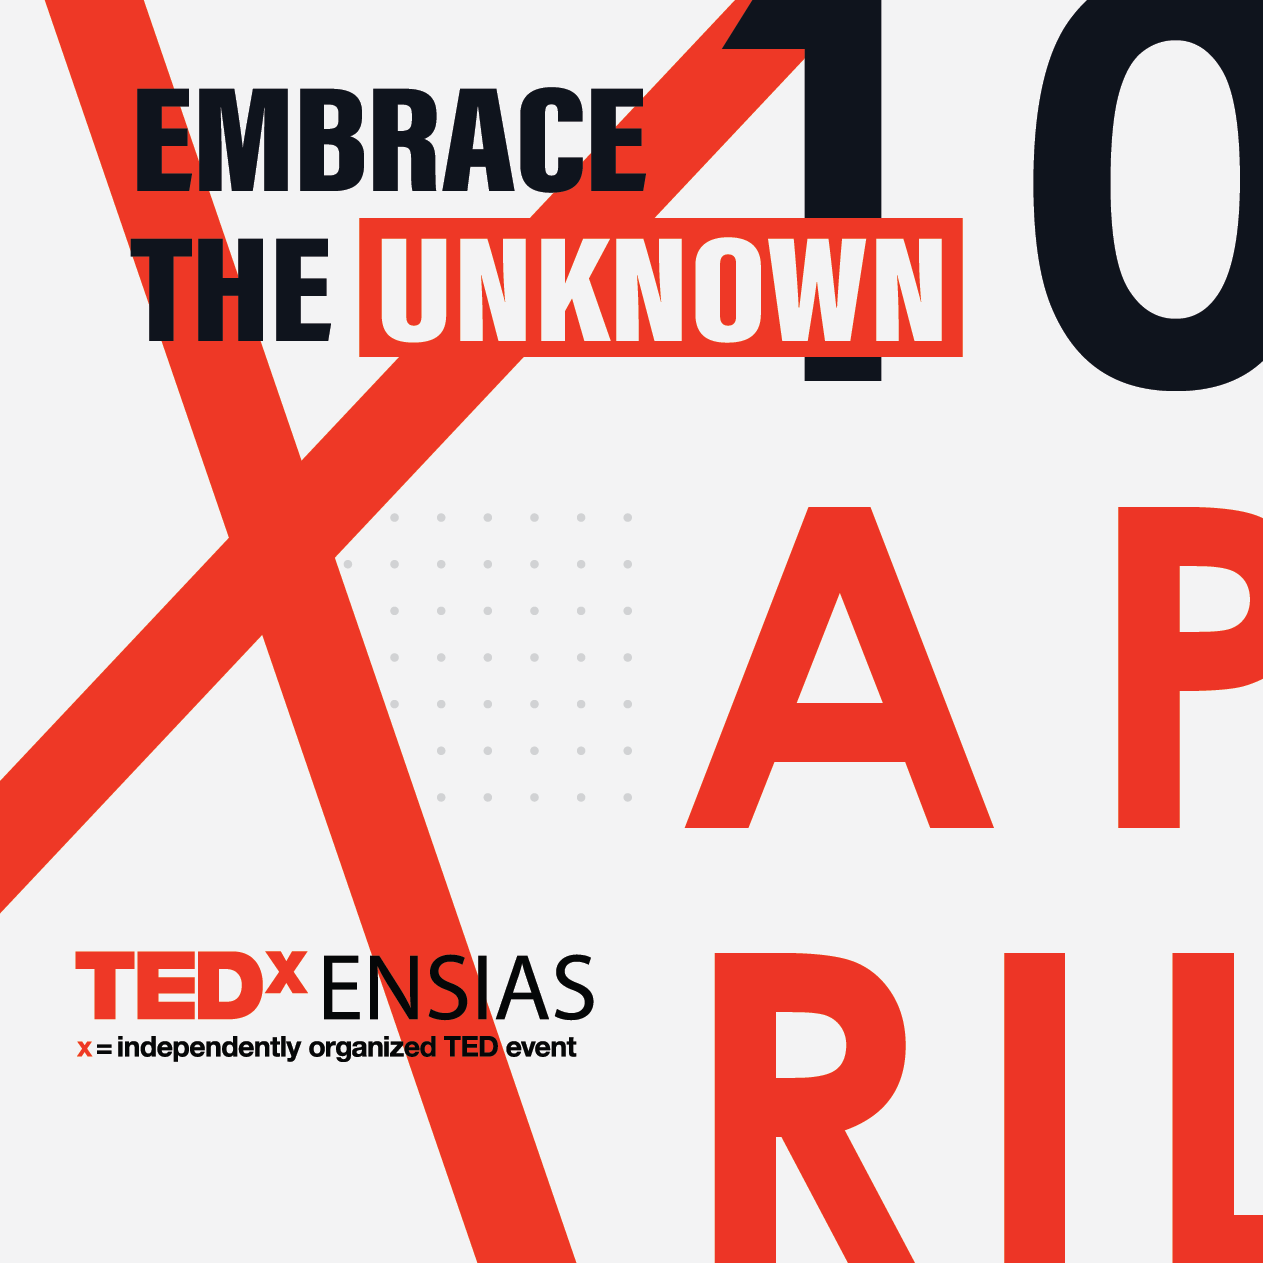 affiche_insta_tedx.png